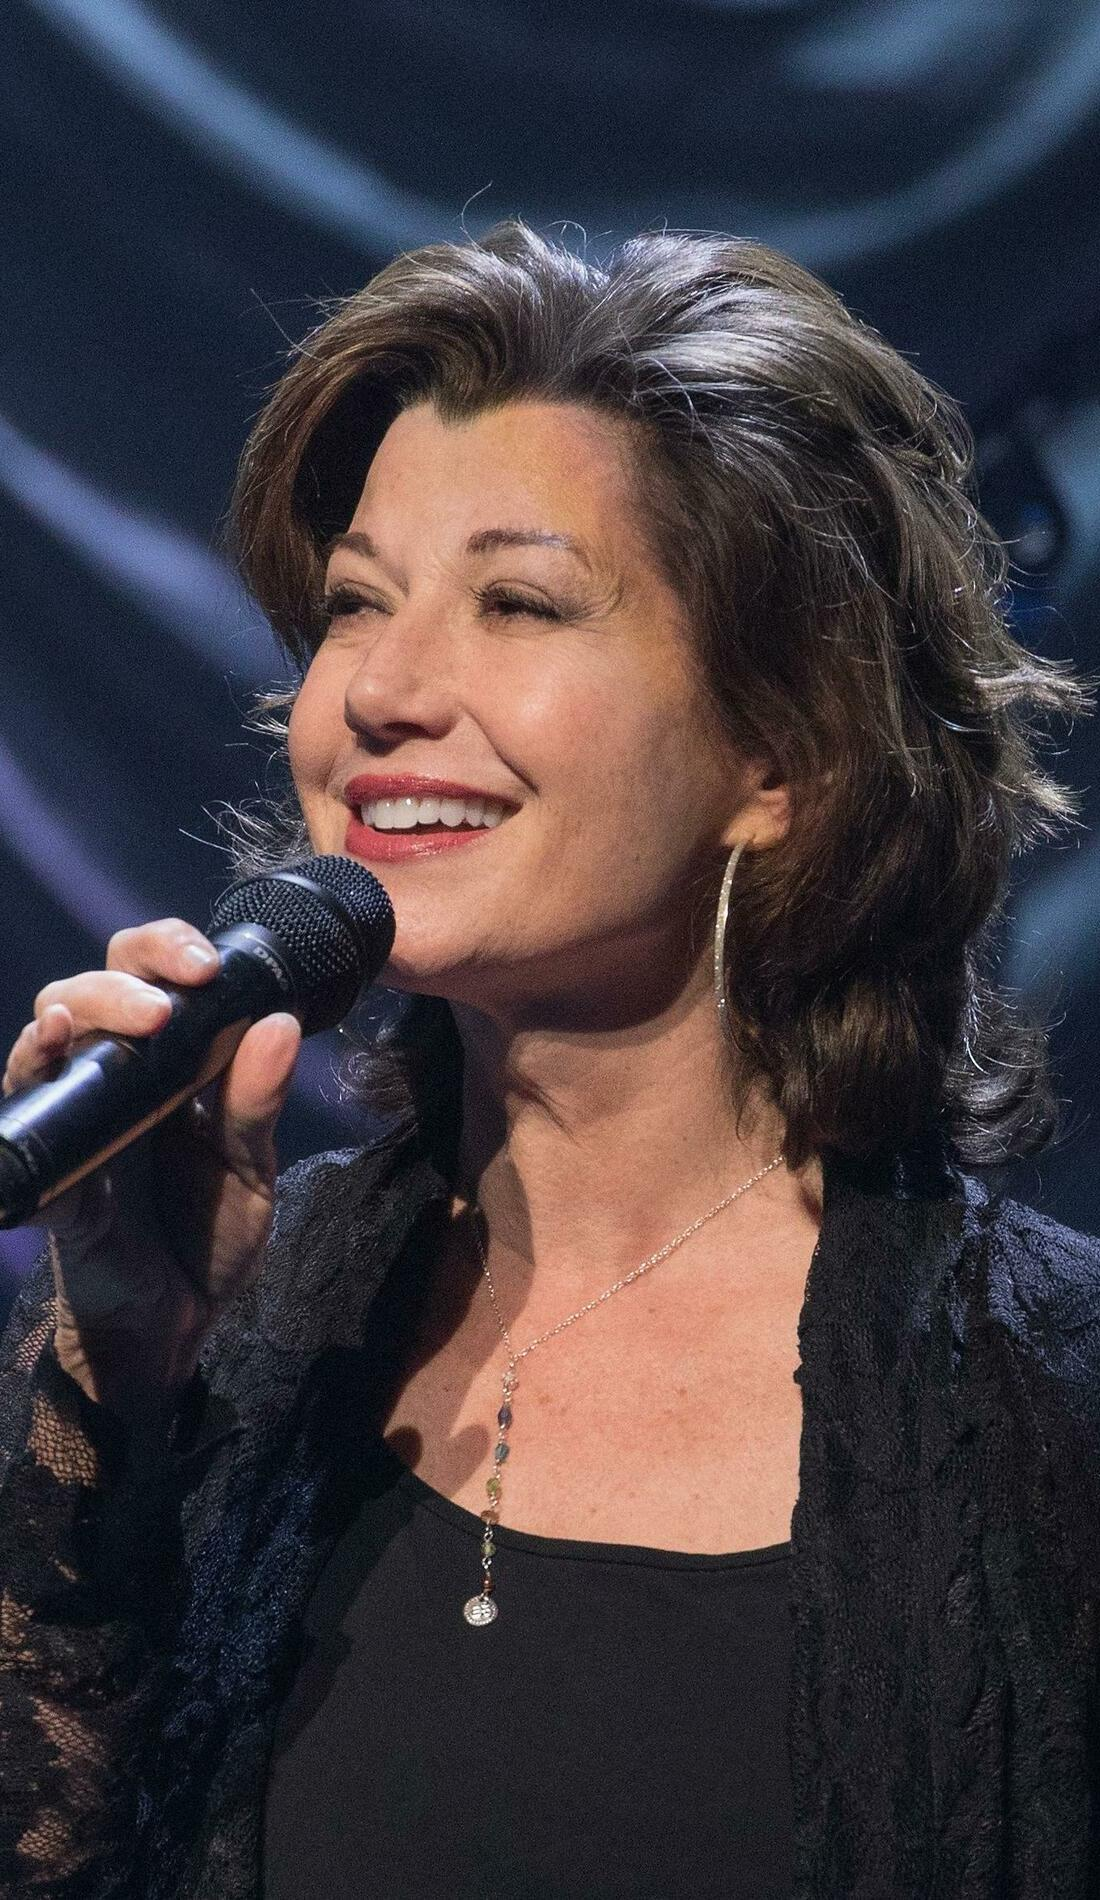 A Amy Grant live event